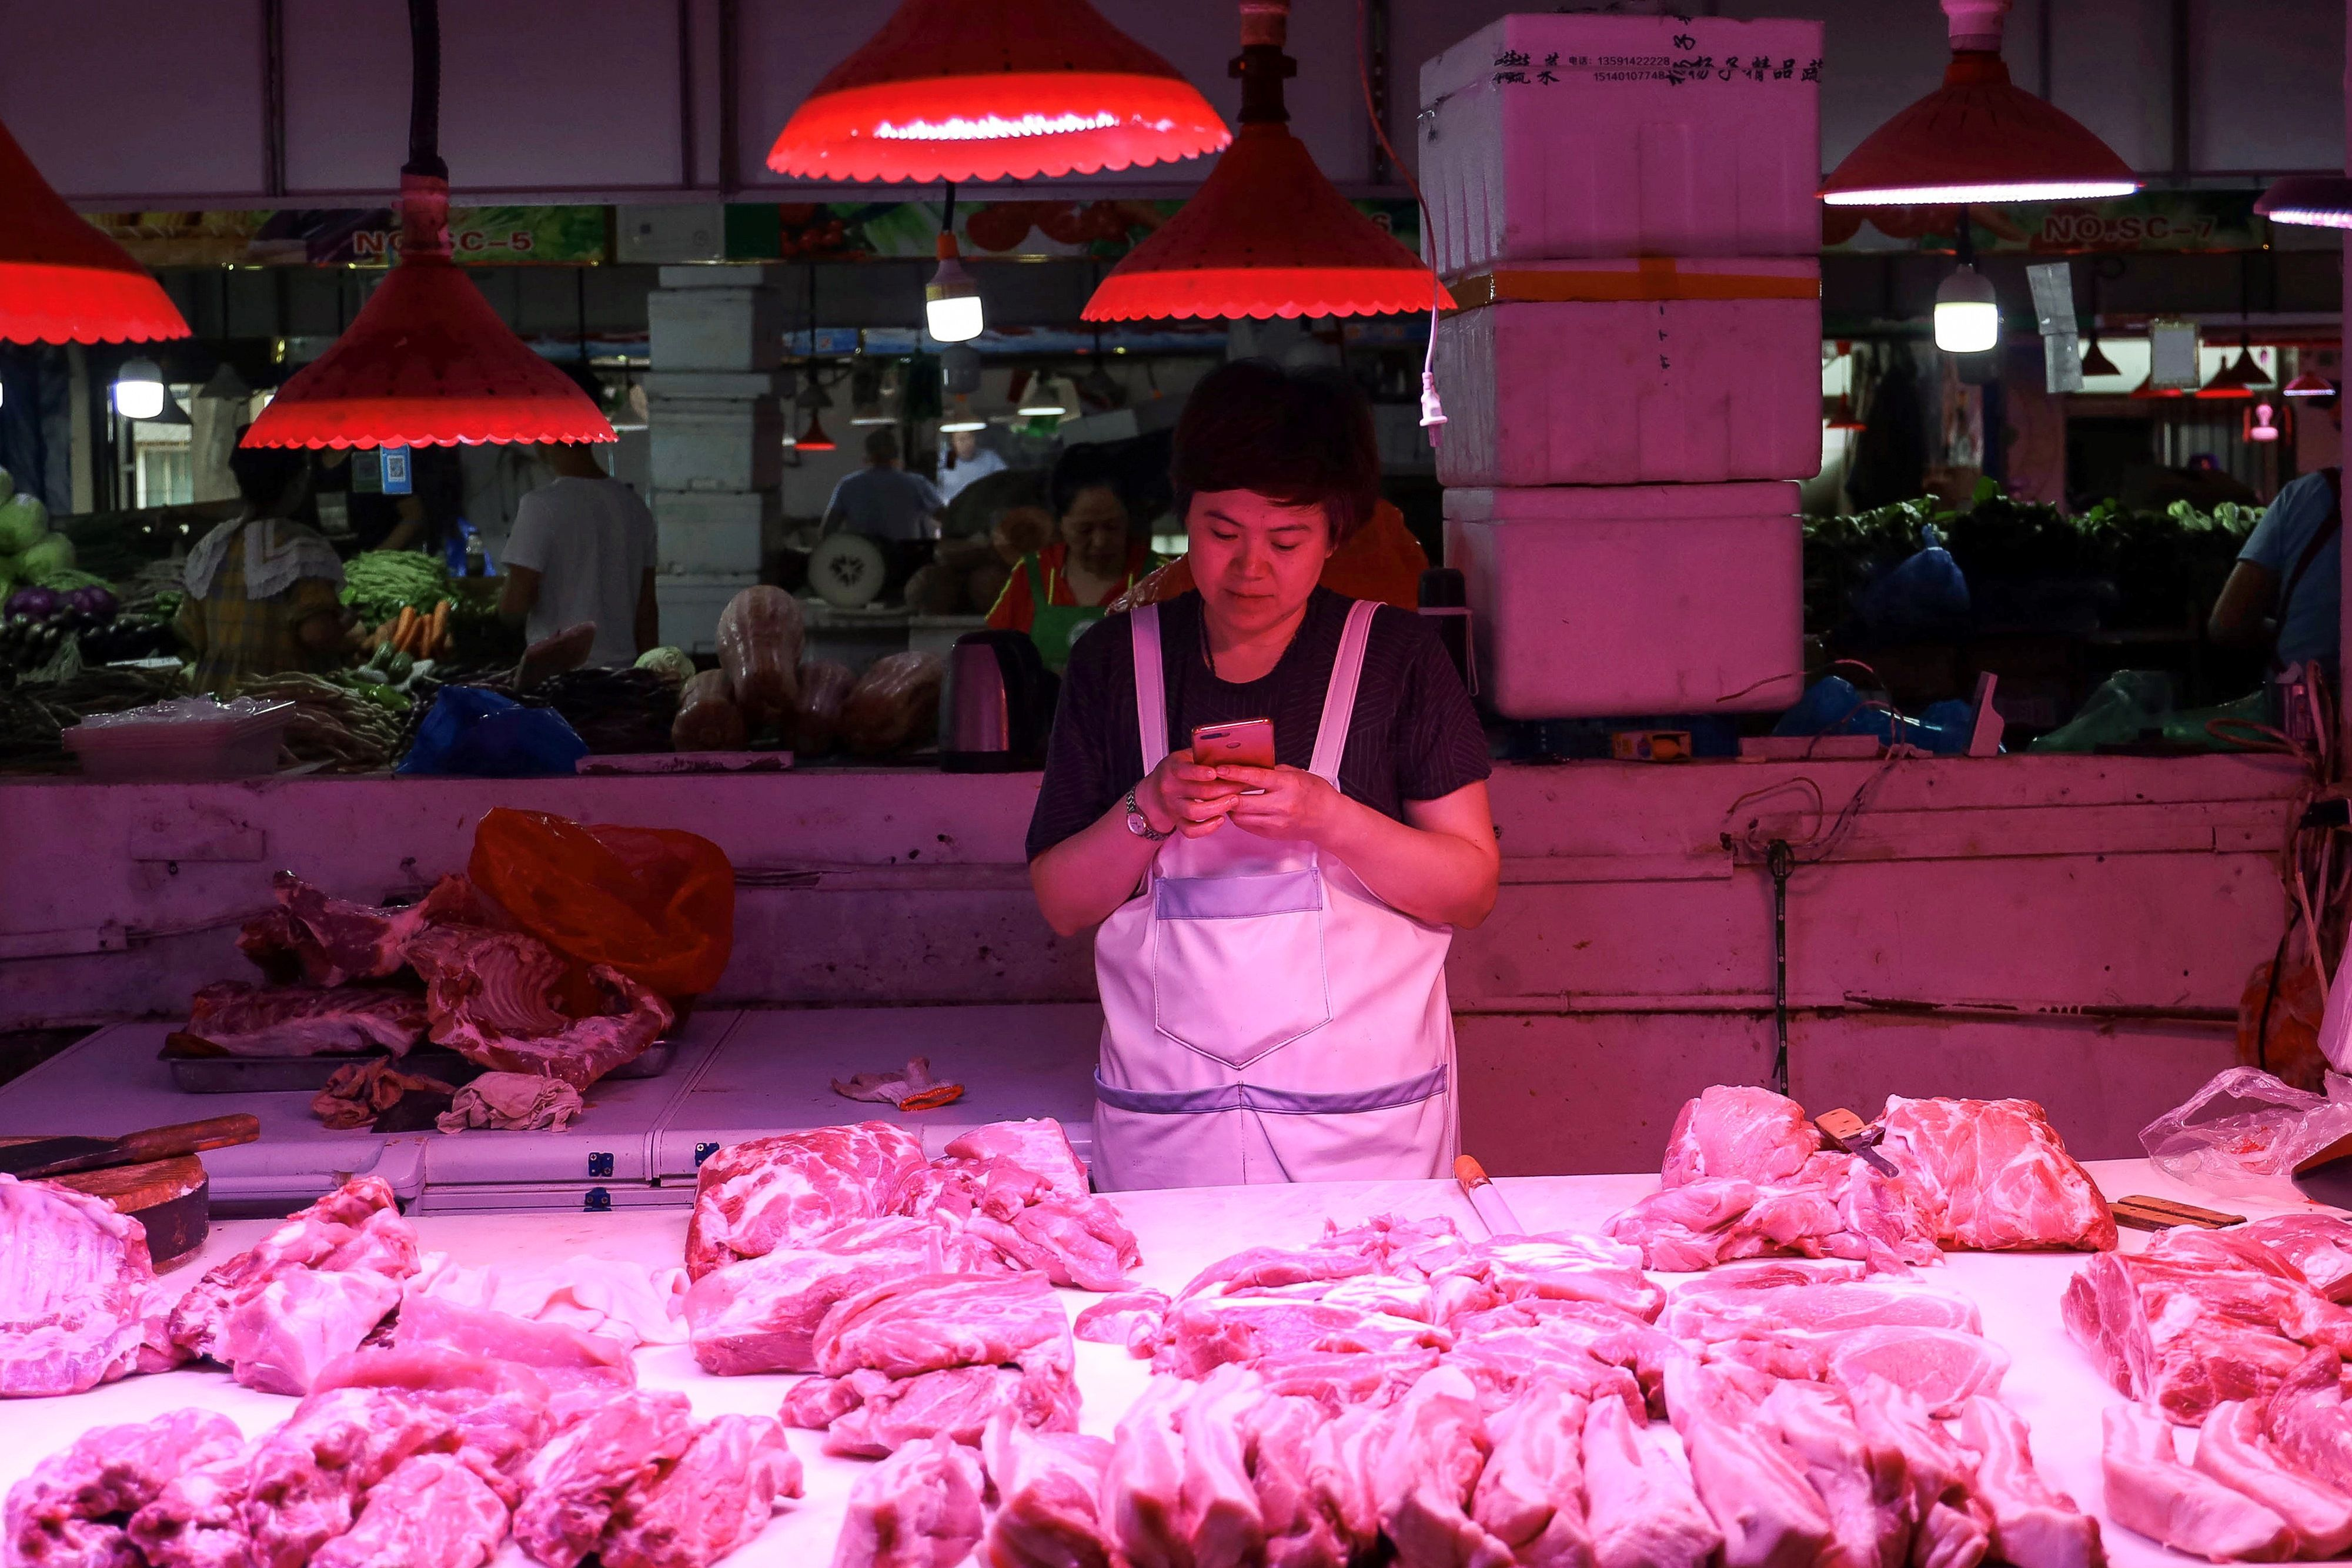 Meat industry says China's pork, beef ban costing it $100-million, asks for assistance, clear strategy